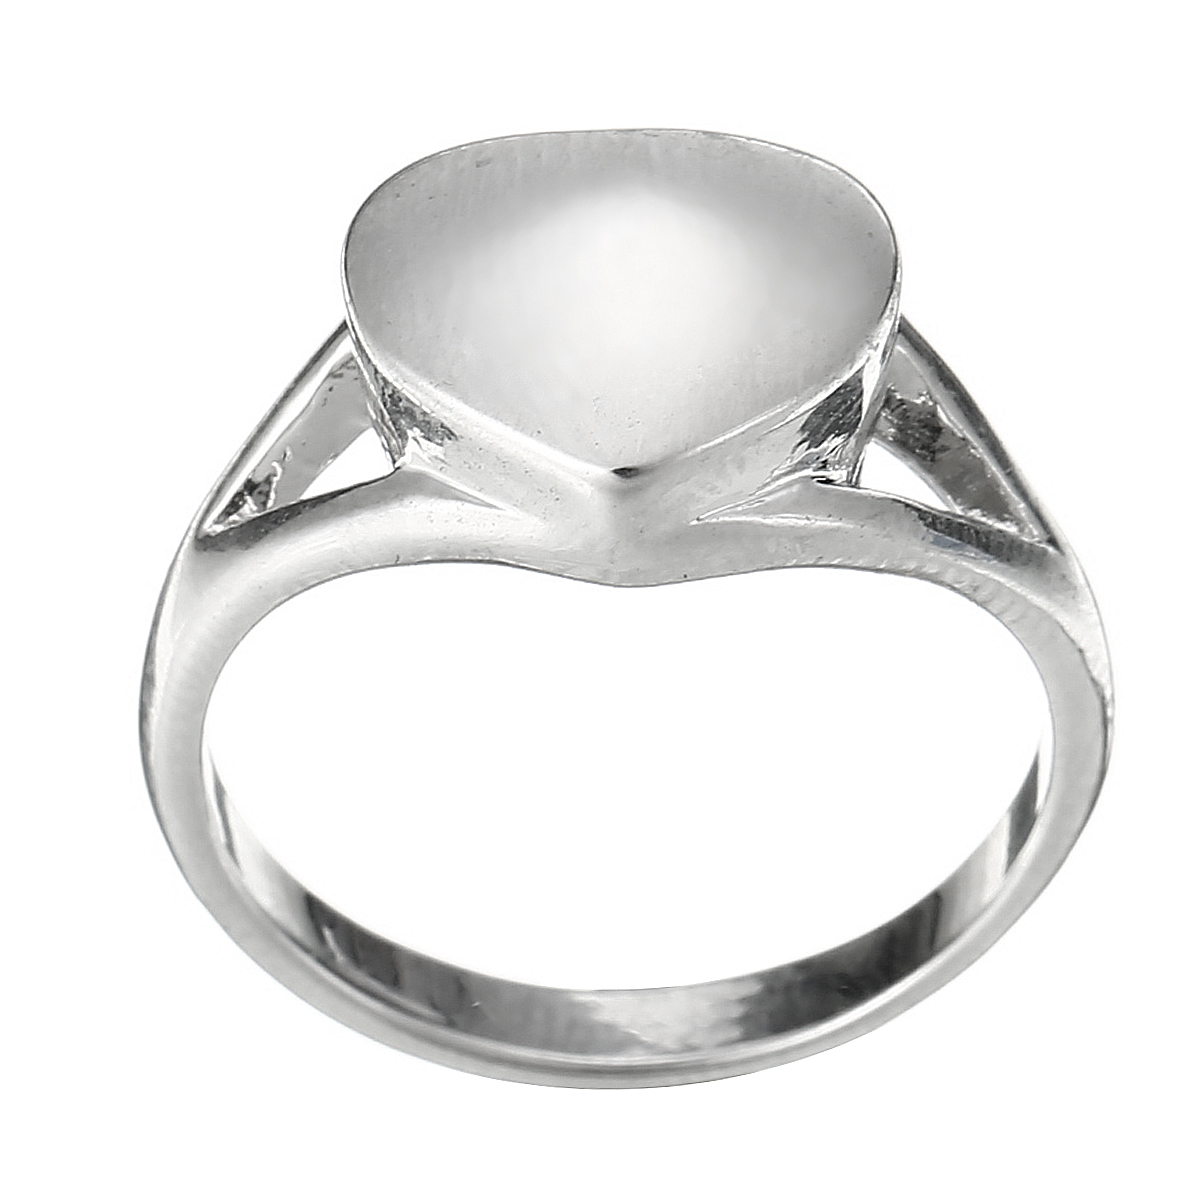 lifeware product jewelry ring made rings from cremation ashes